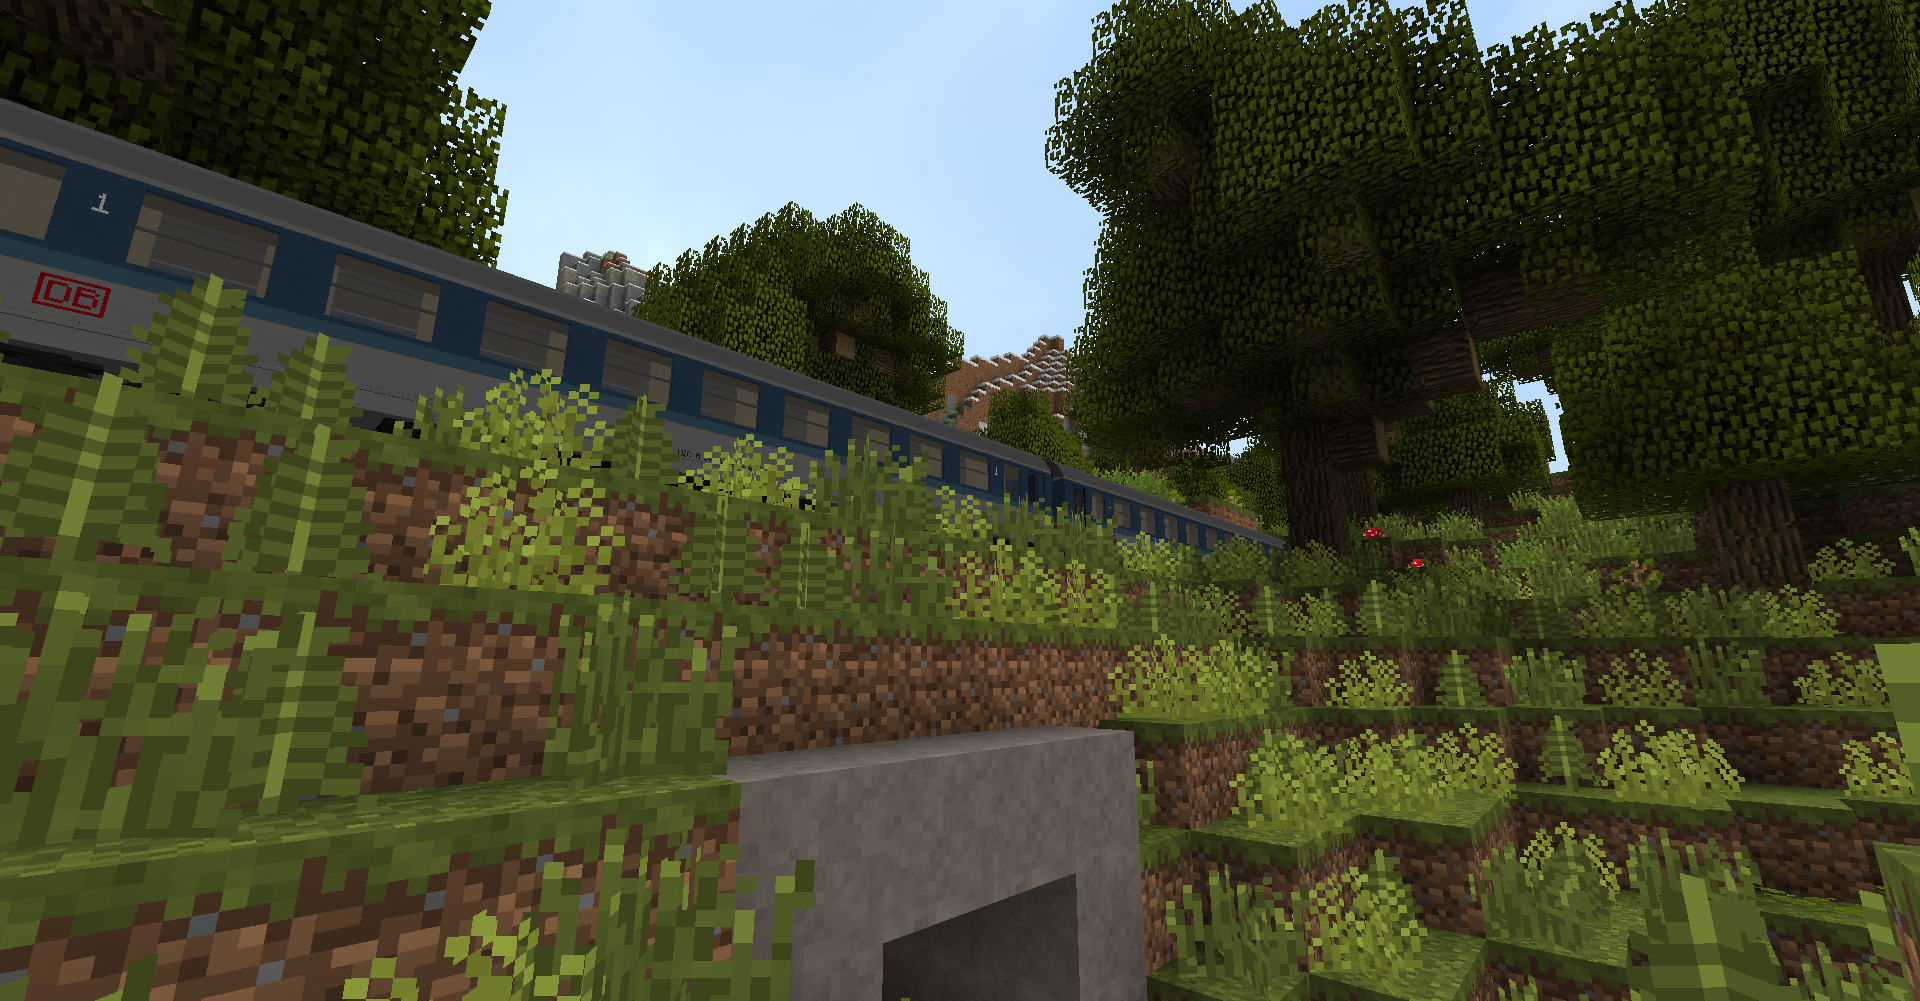 A regional train in the forest - Image by: 'Unit_FireFox'